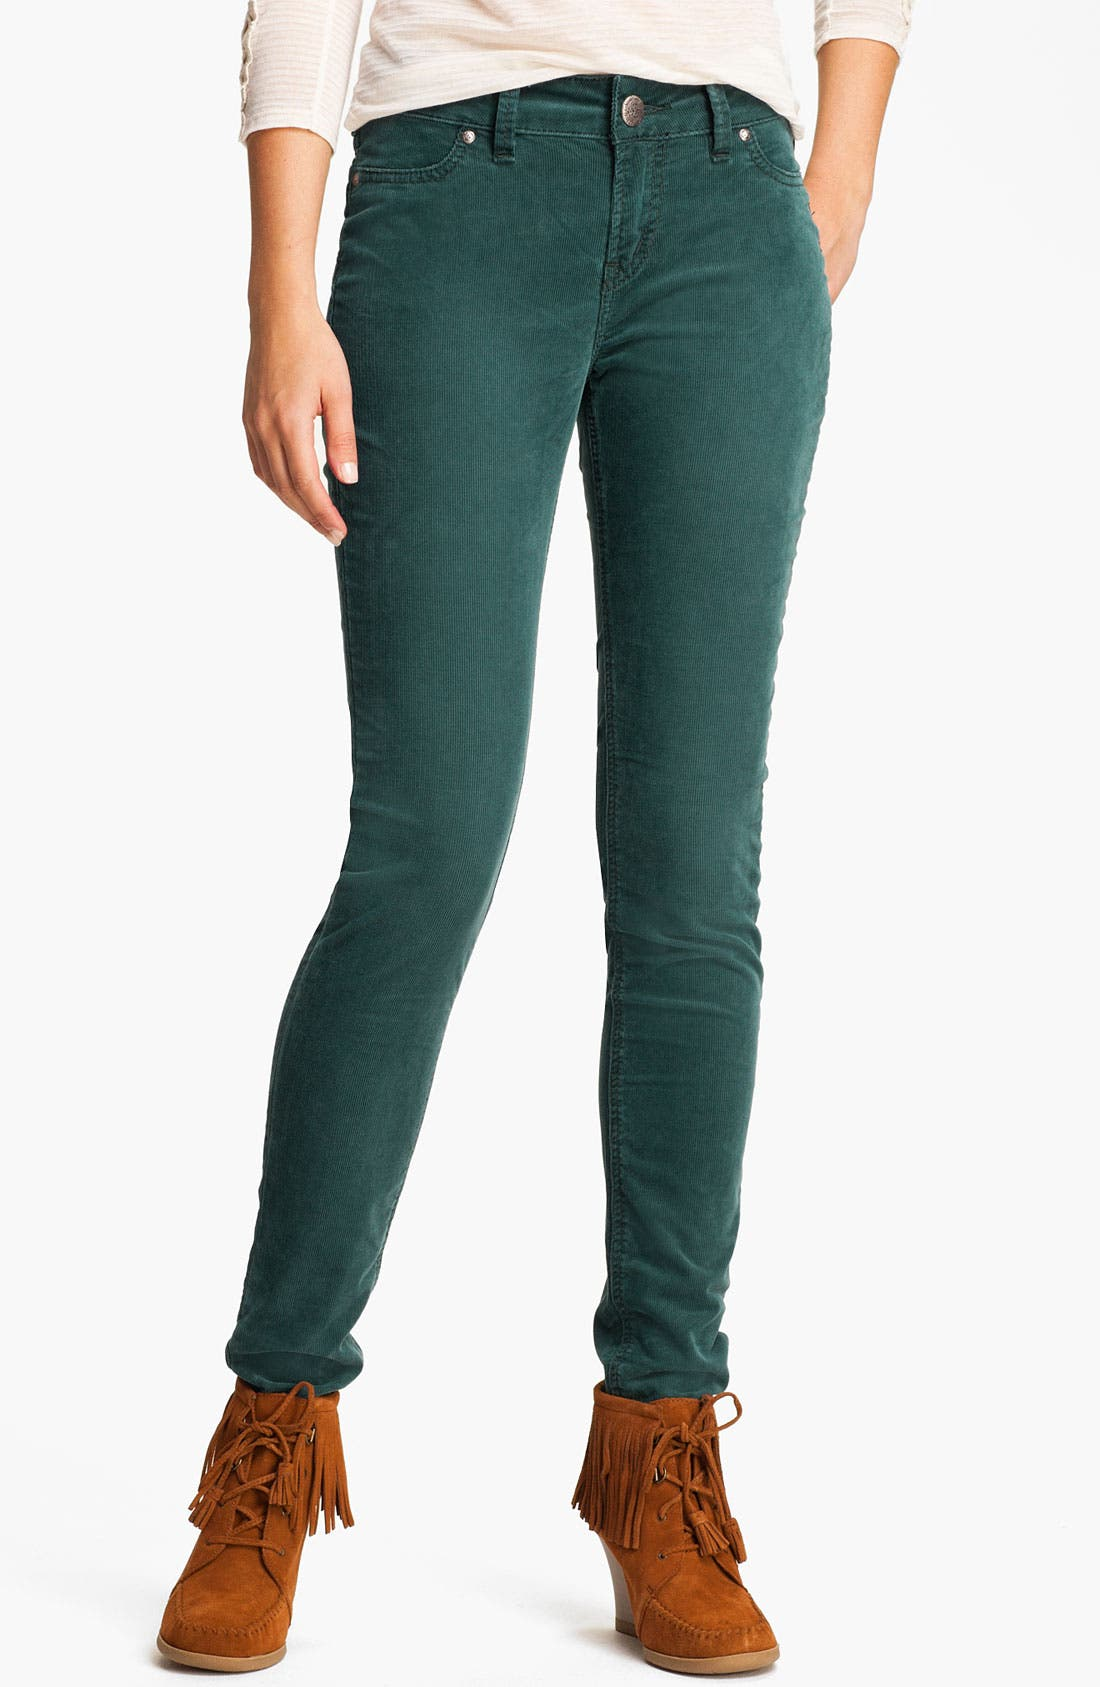 Alternate Image 1 Selected - Silver Jeans Co. 'Suki' Skinny Corduroy Pants (Juniors)